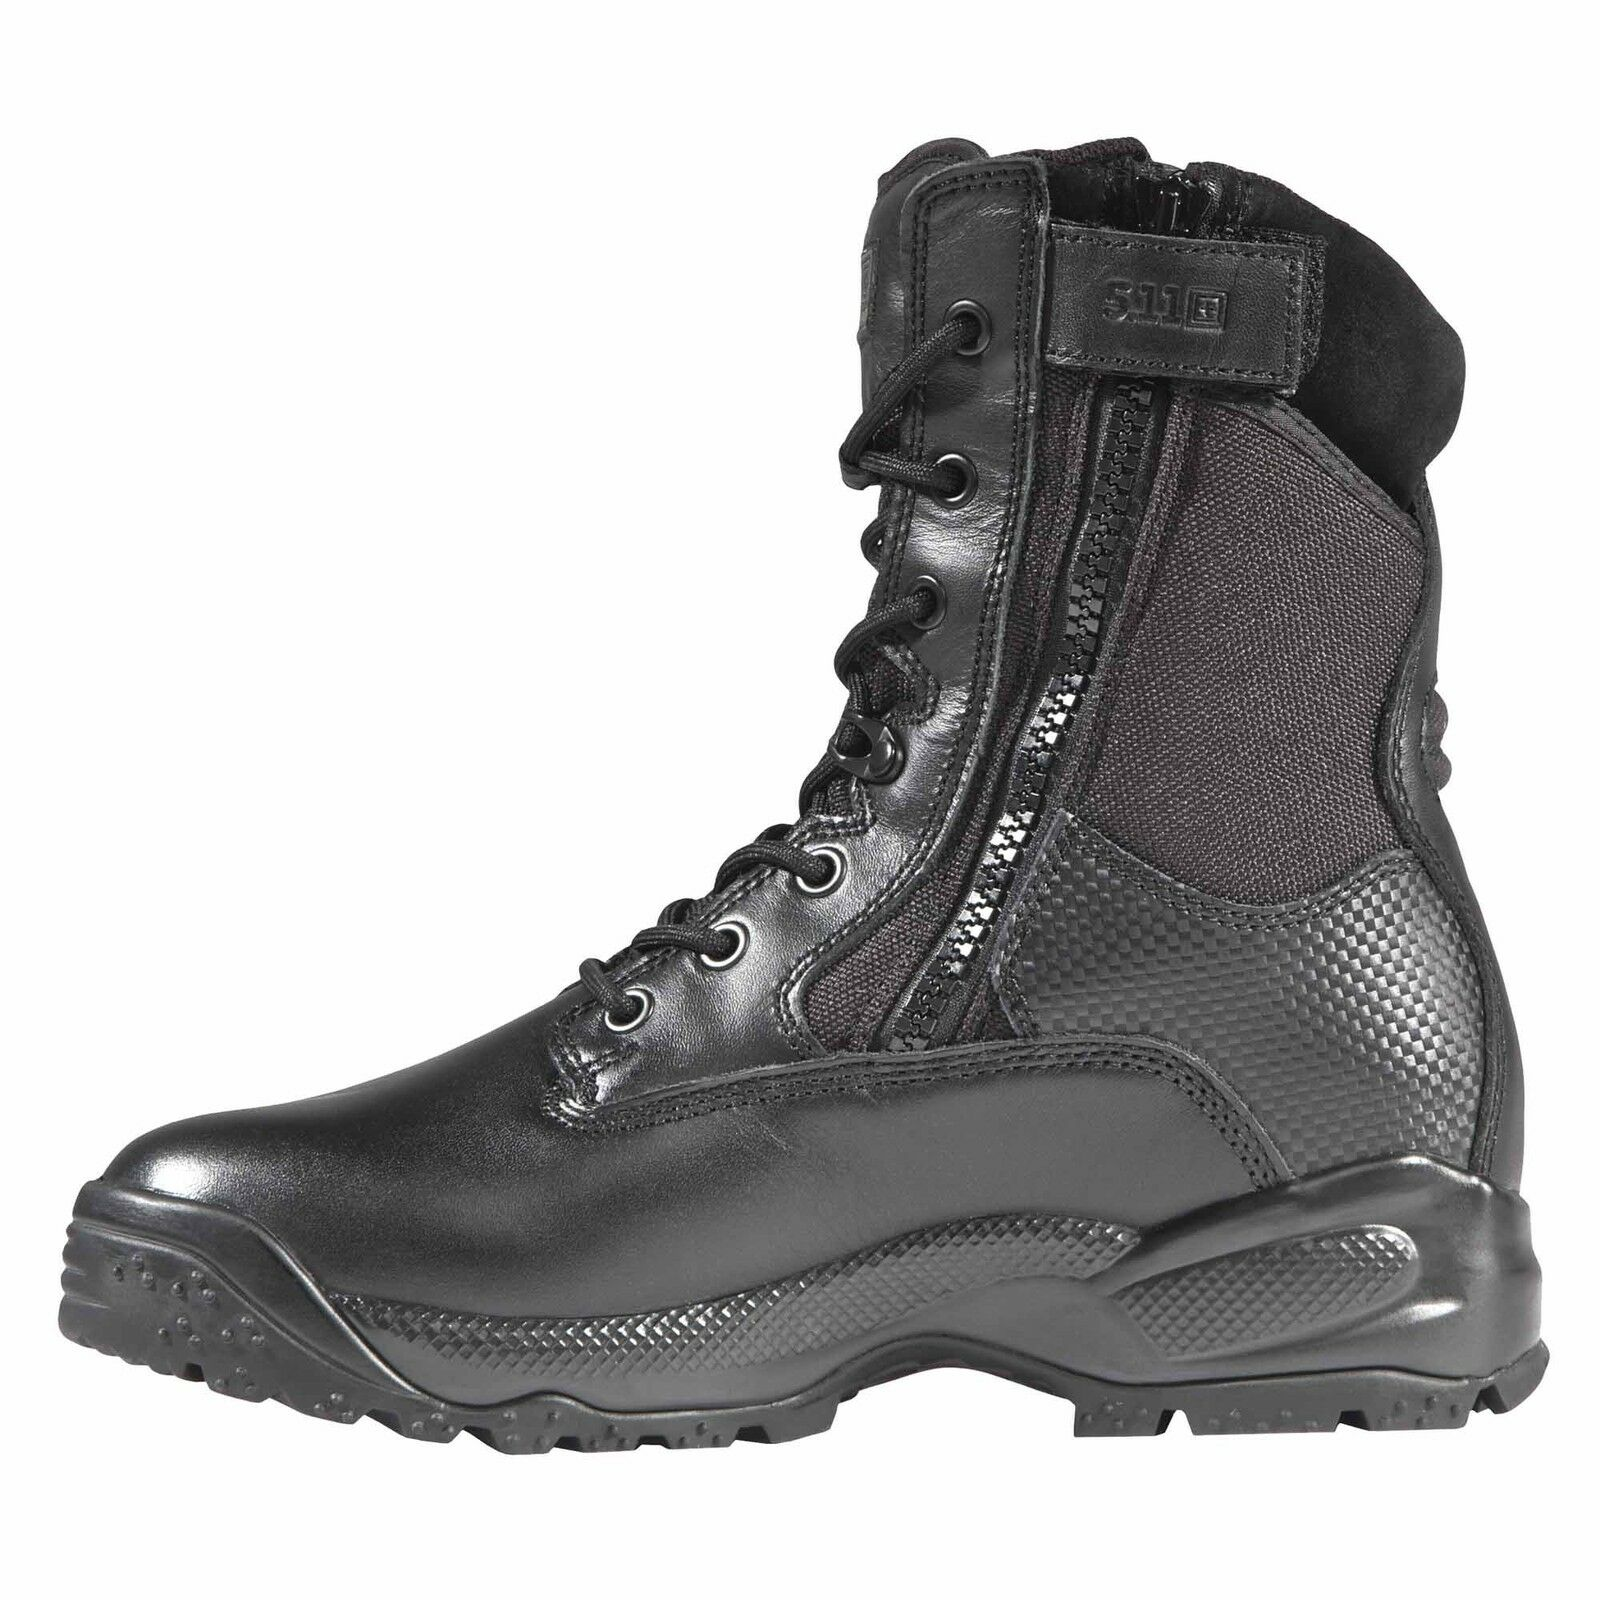 0305bdd1d7b0 ... 511 Mens A.T.A.C. A.T.A.C. A.T.A.C. Storm Waterproof Police Security  Tactical Boots 12004--Special c41847 ...